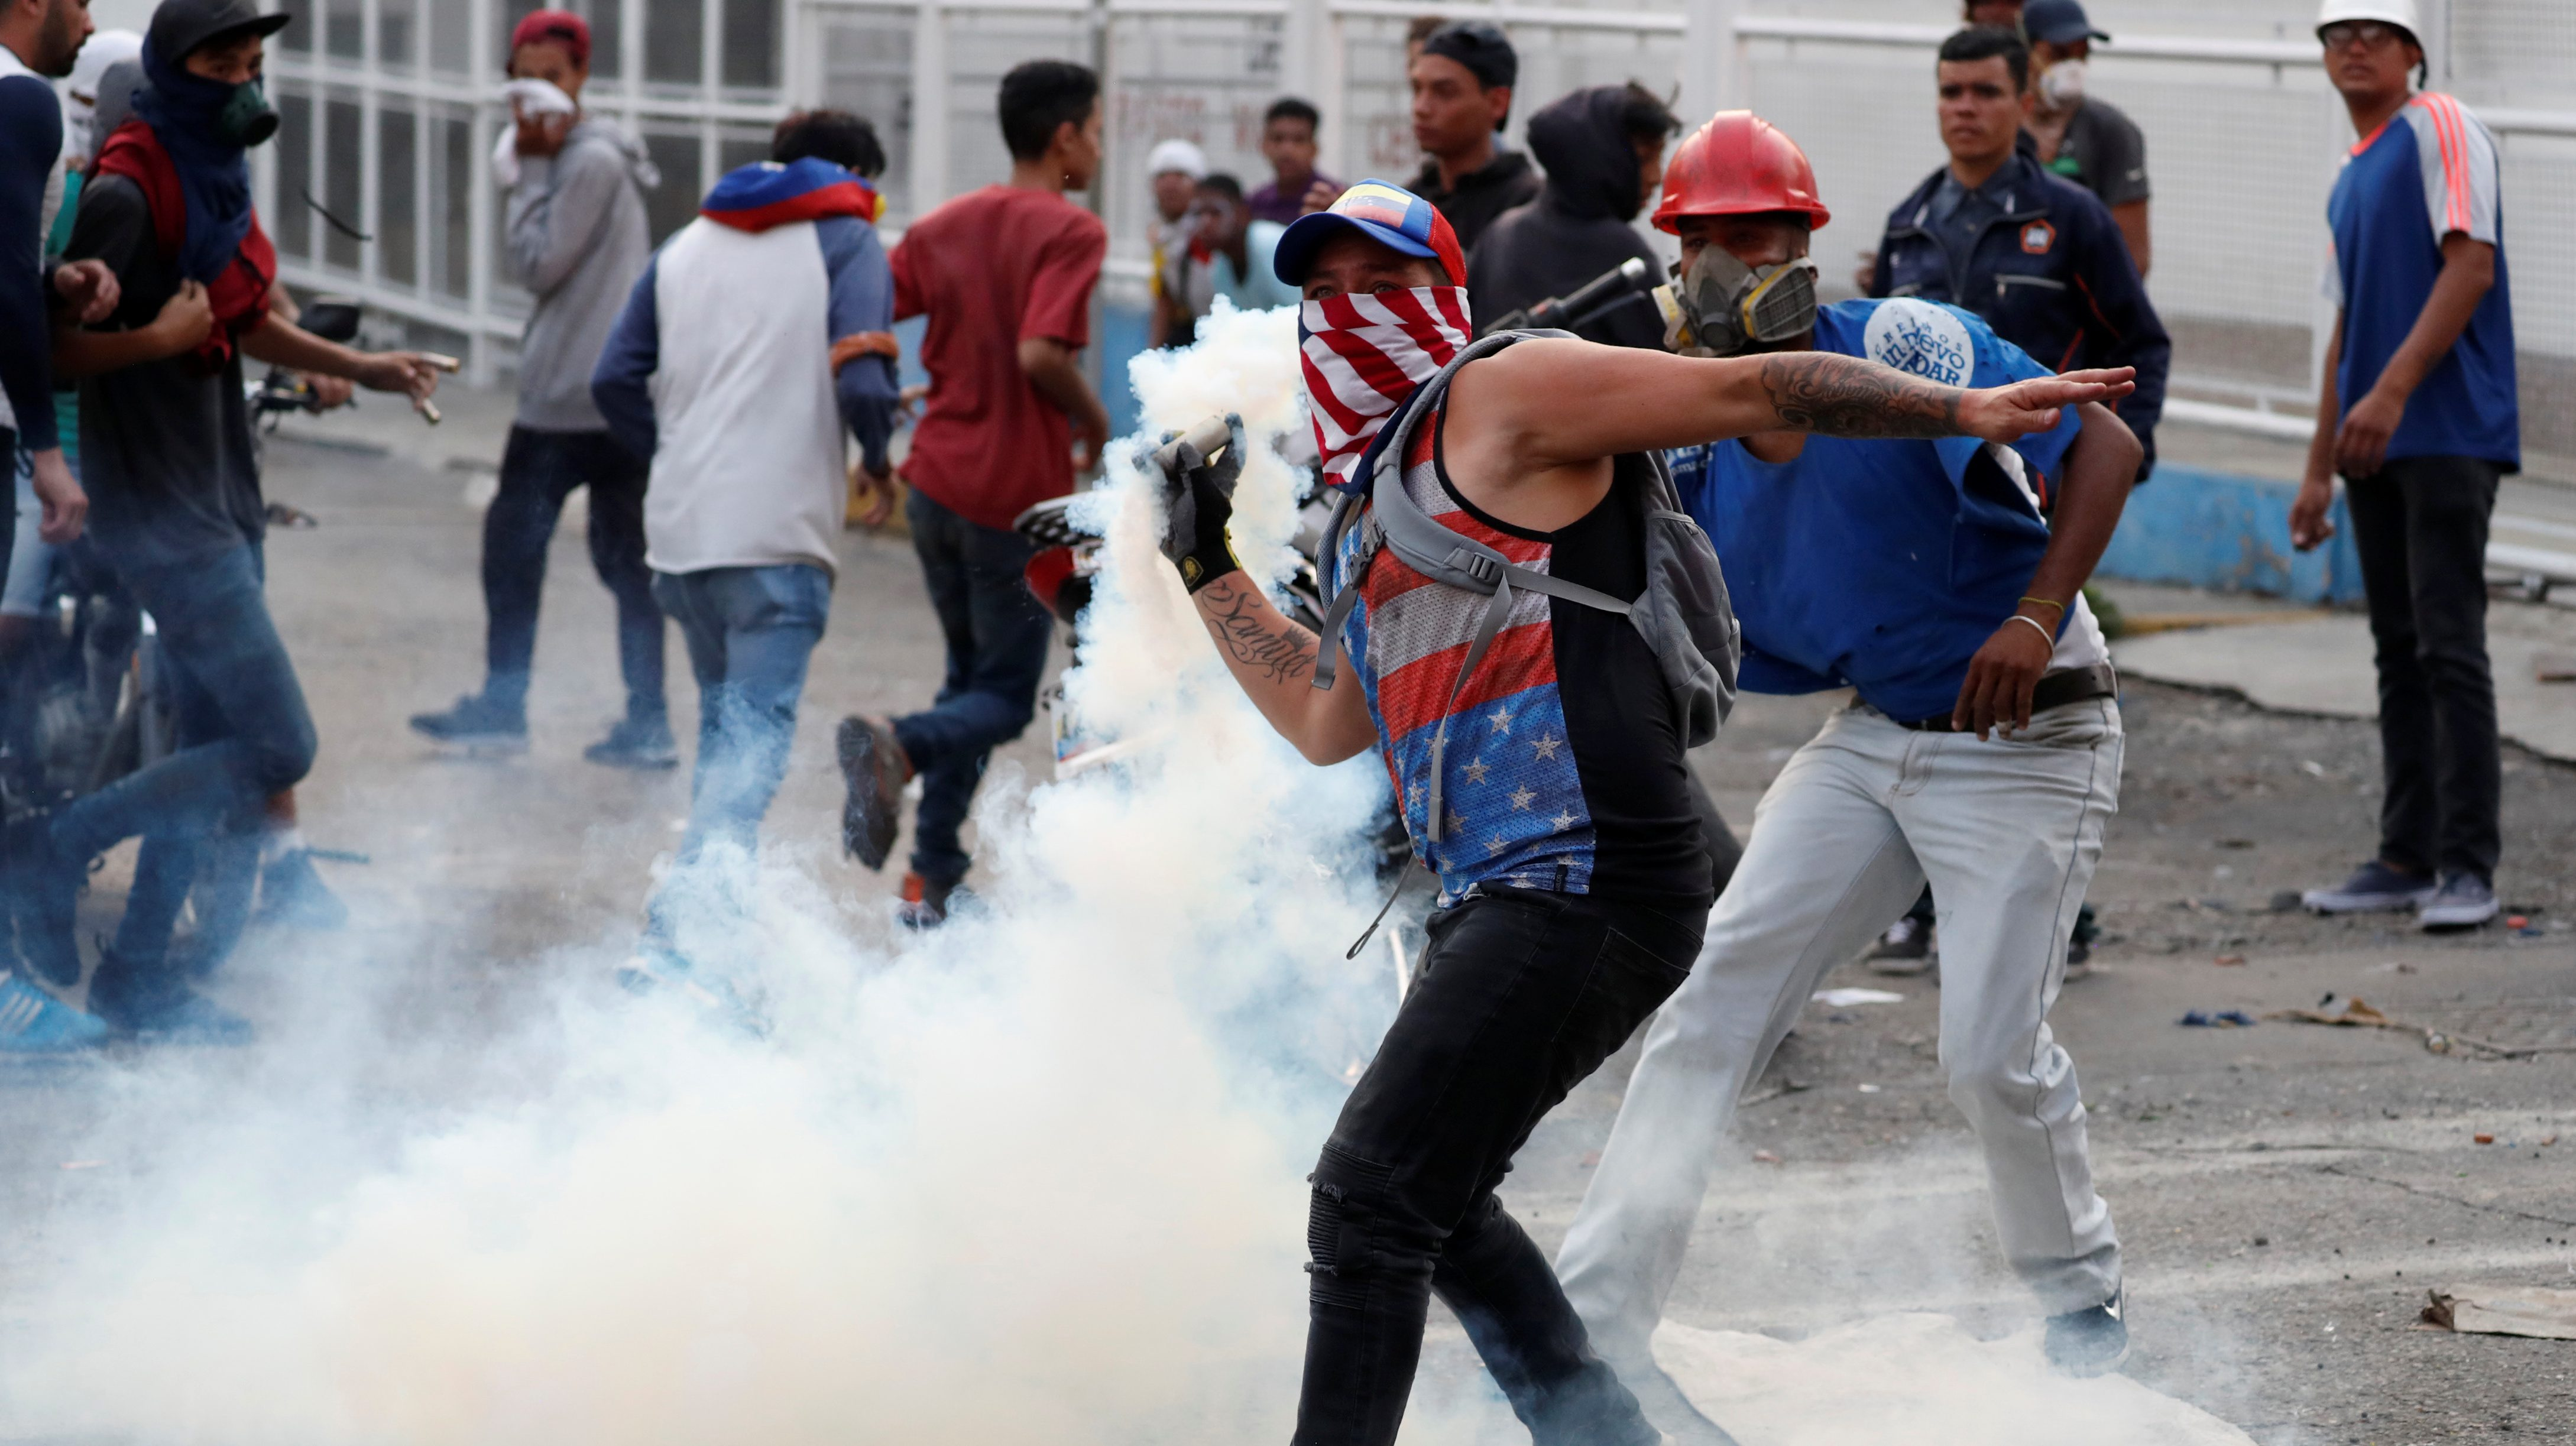 A demonstrator throws back a tear gas canister during clashes with government security forces in Caracas, Venezuela April 30, 2019.